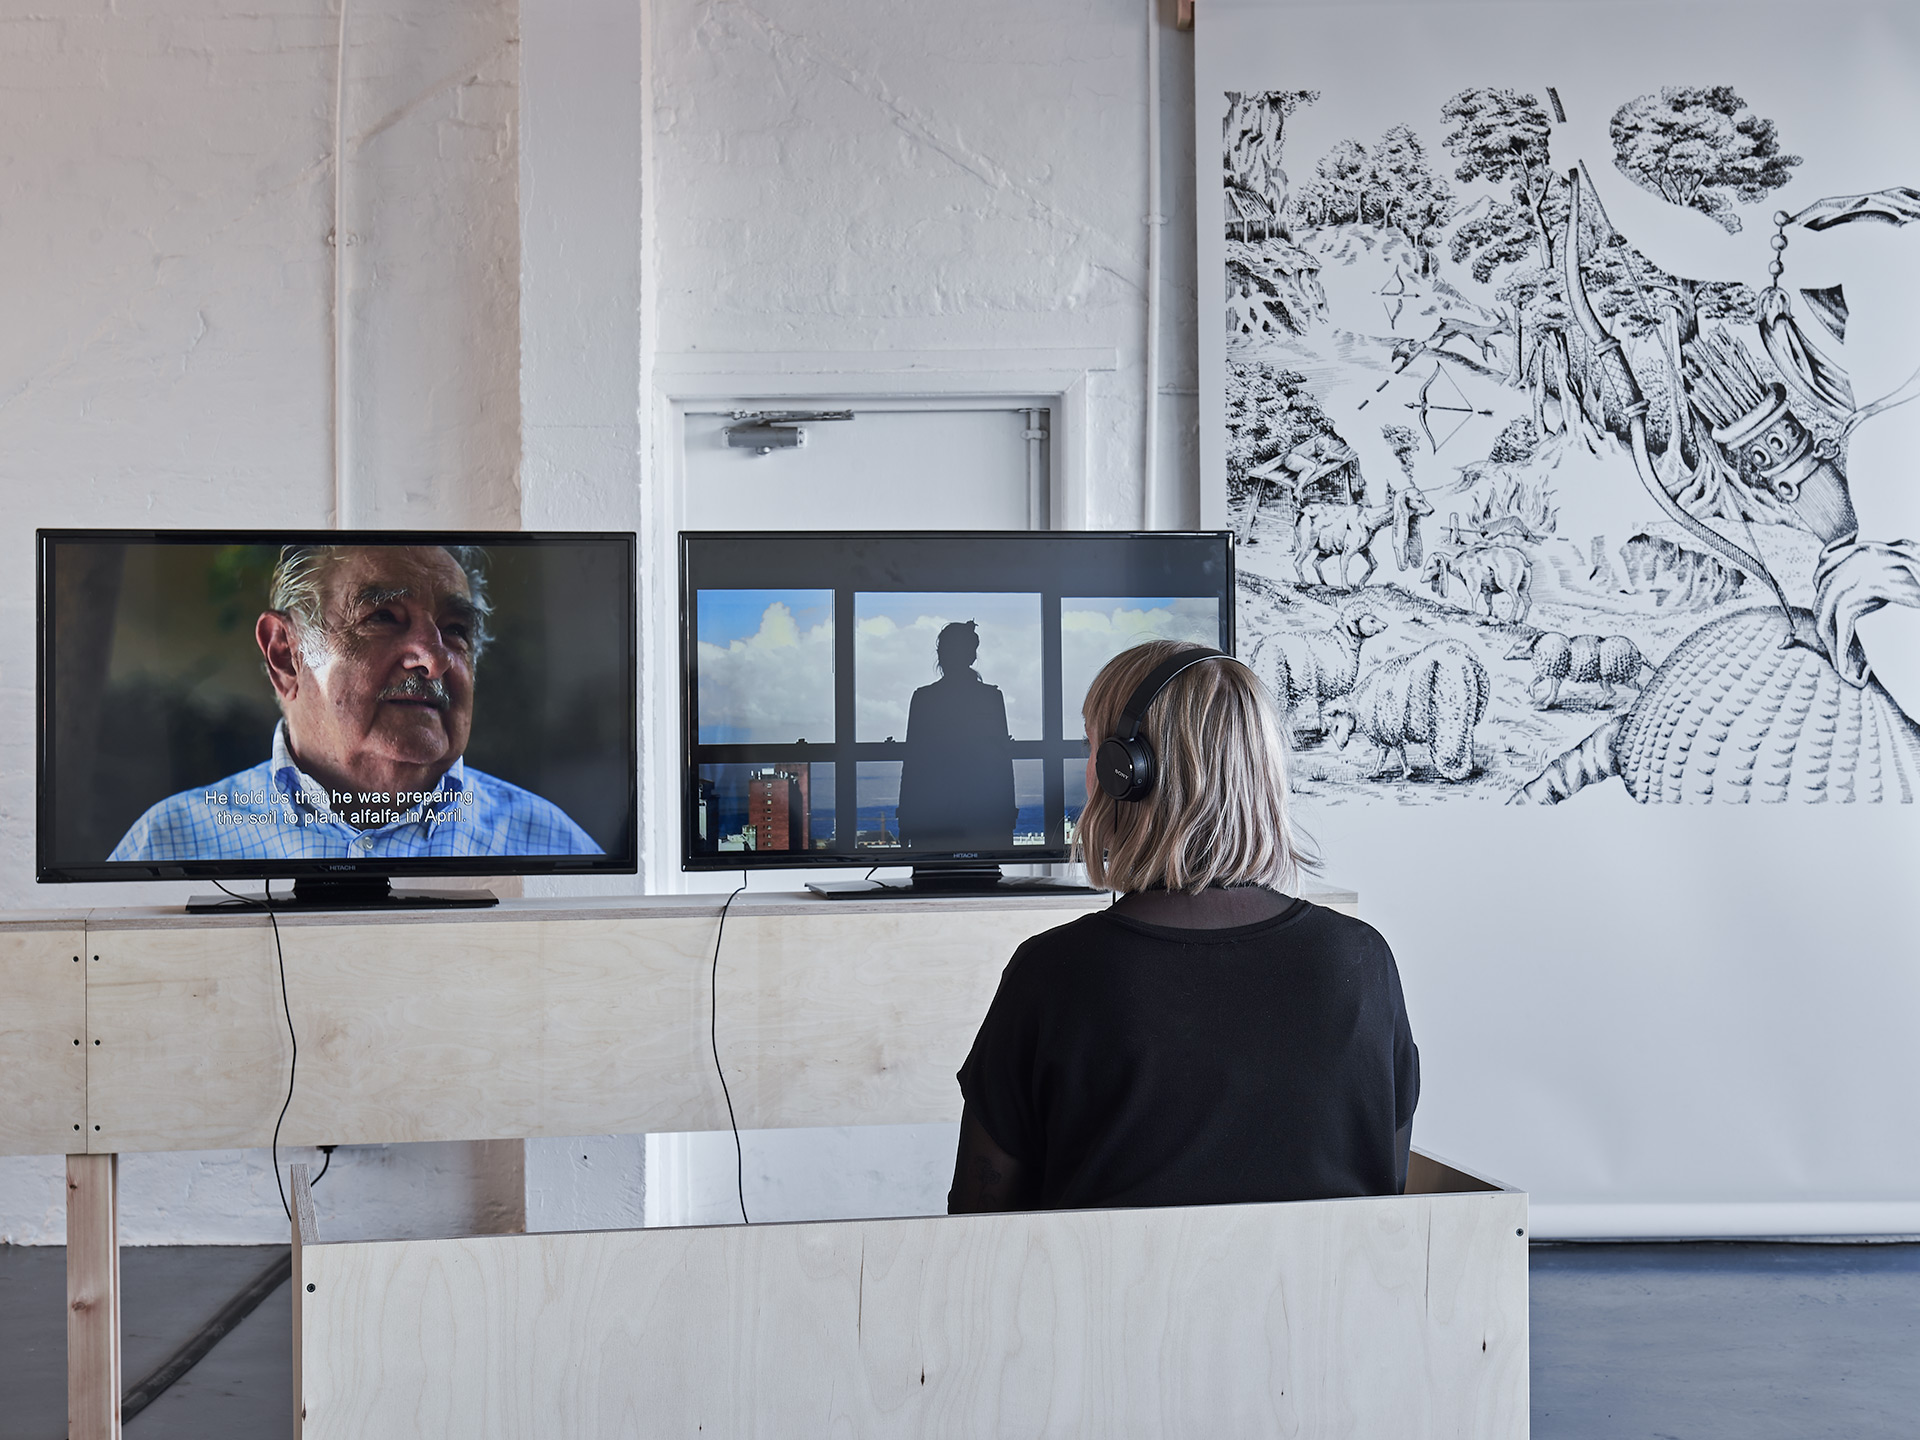 A person facing away wears headphones whilst watching a film on a TV. In the background the edge of a large drawing can be seen.